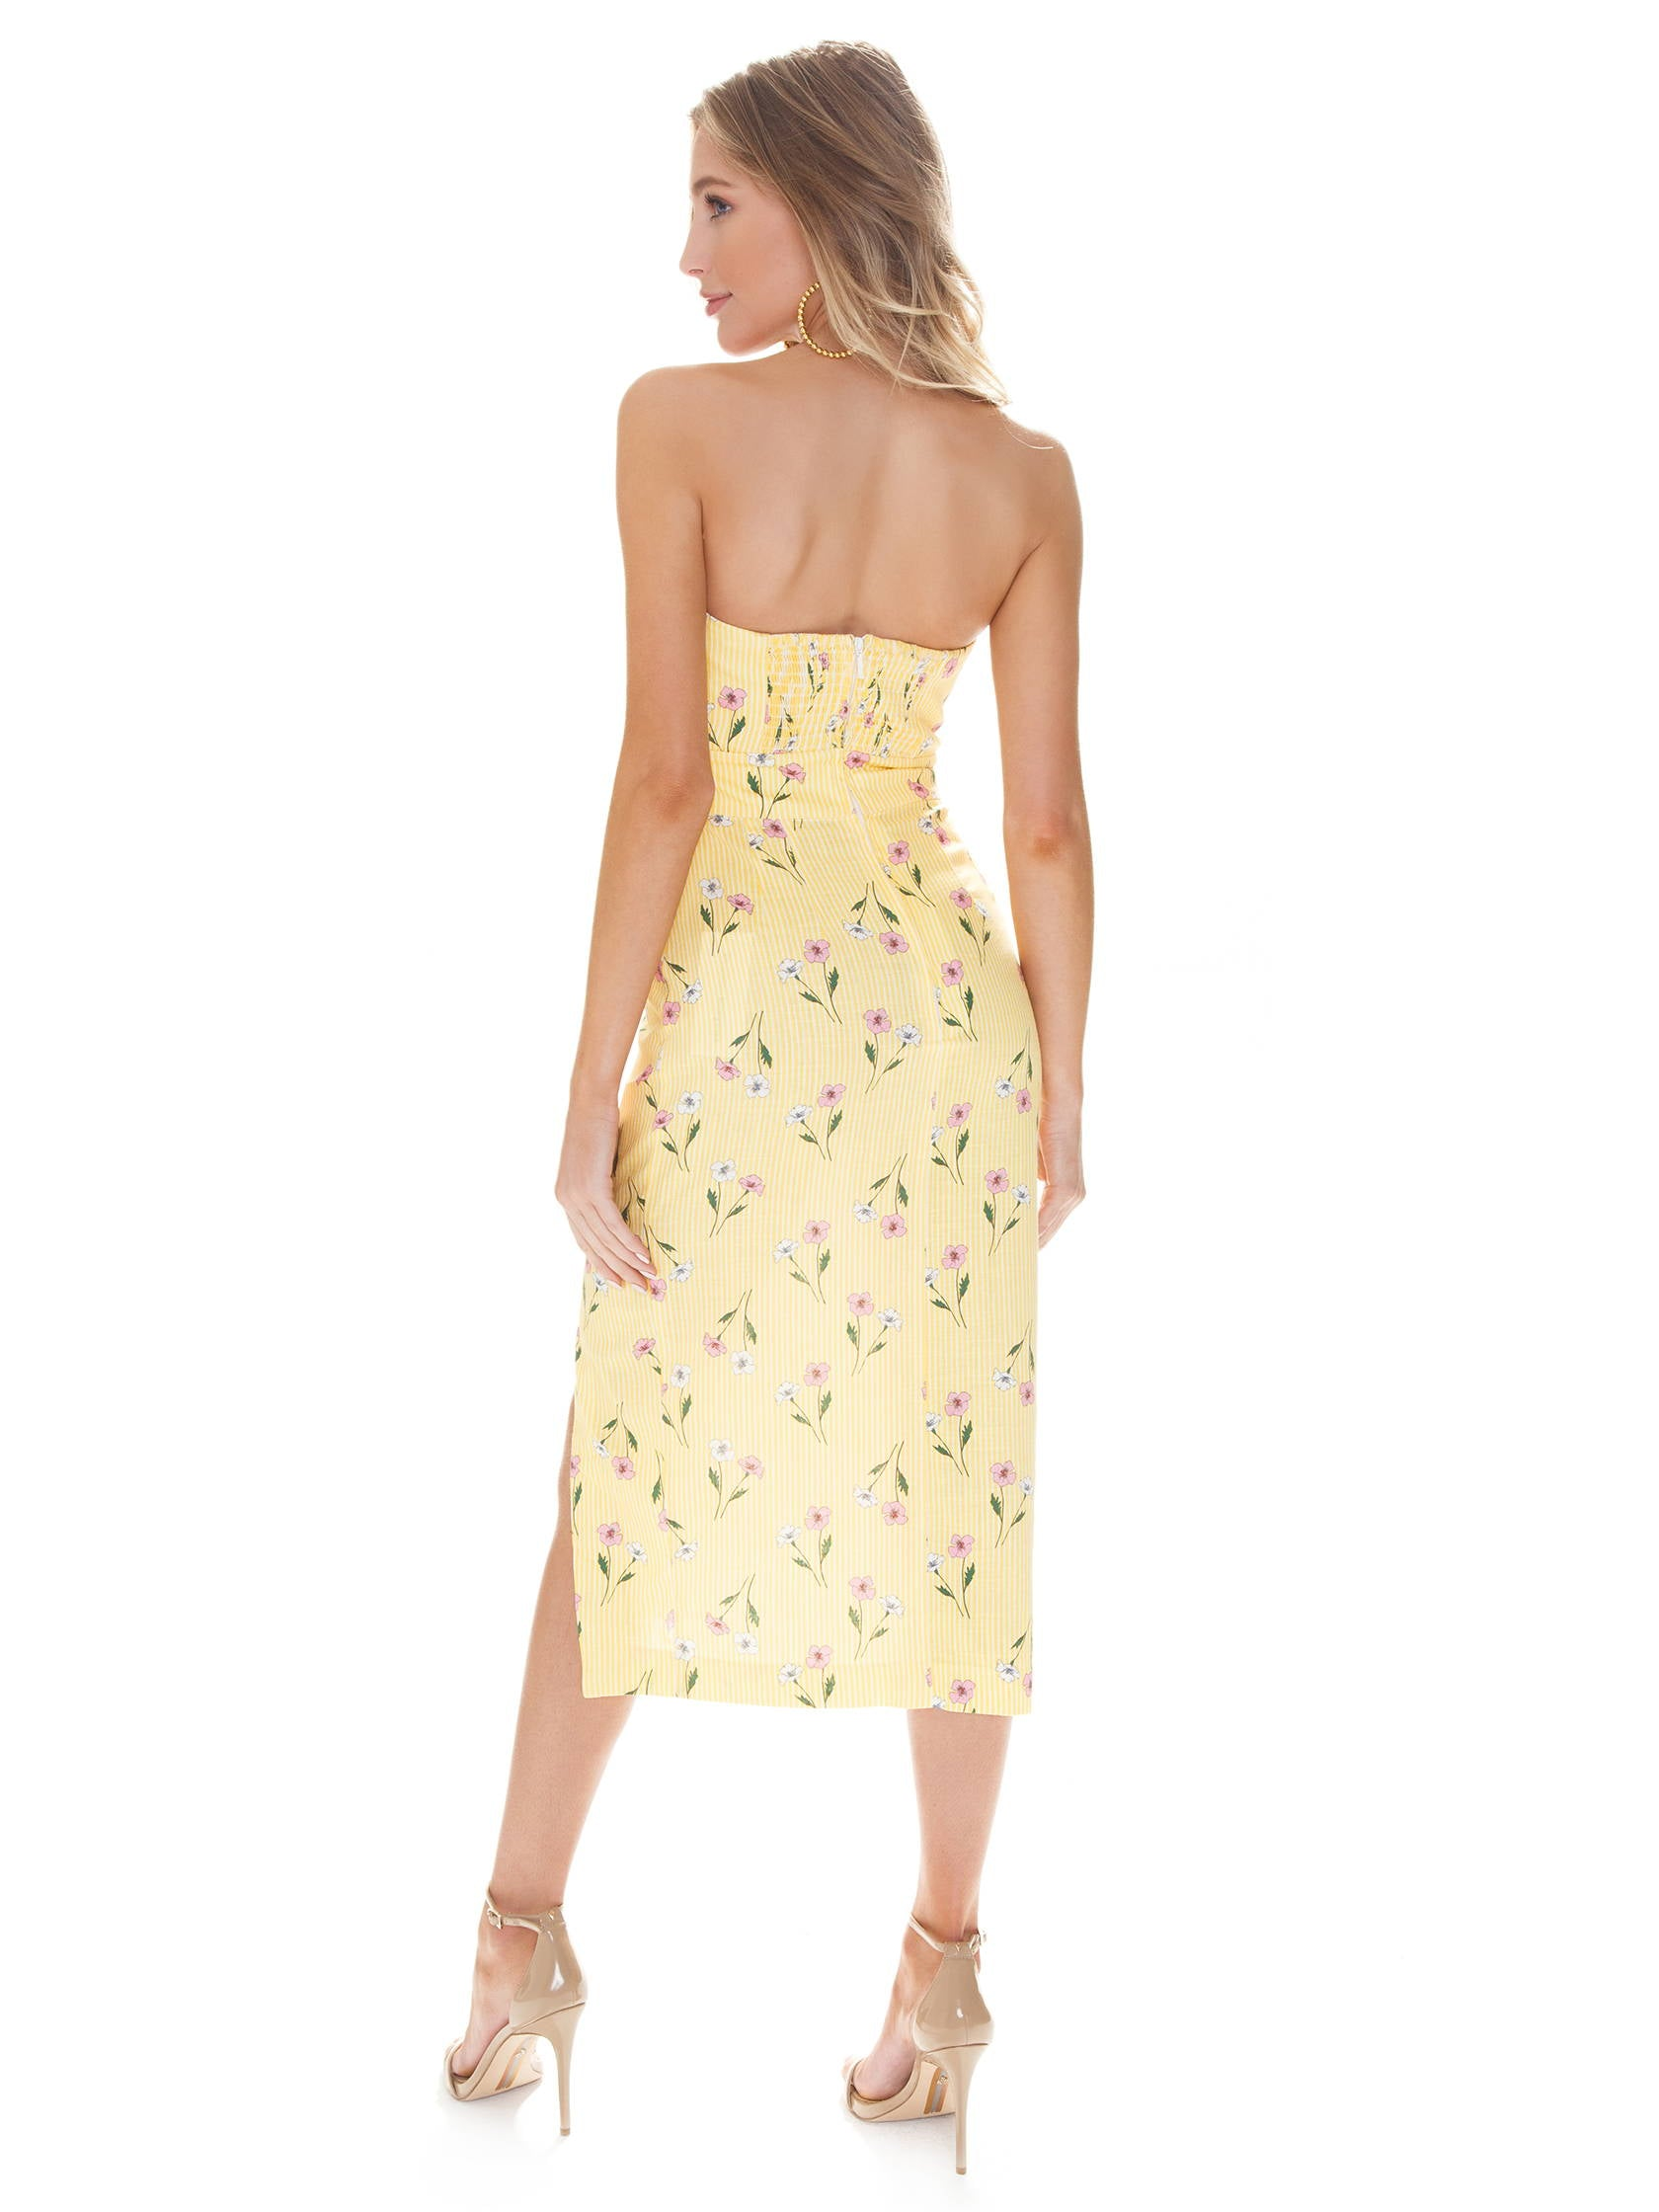 Women wearing a dress rental from Finders Keepers called Limoncello Dress